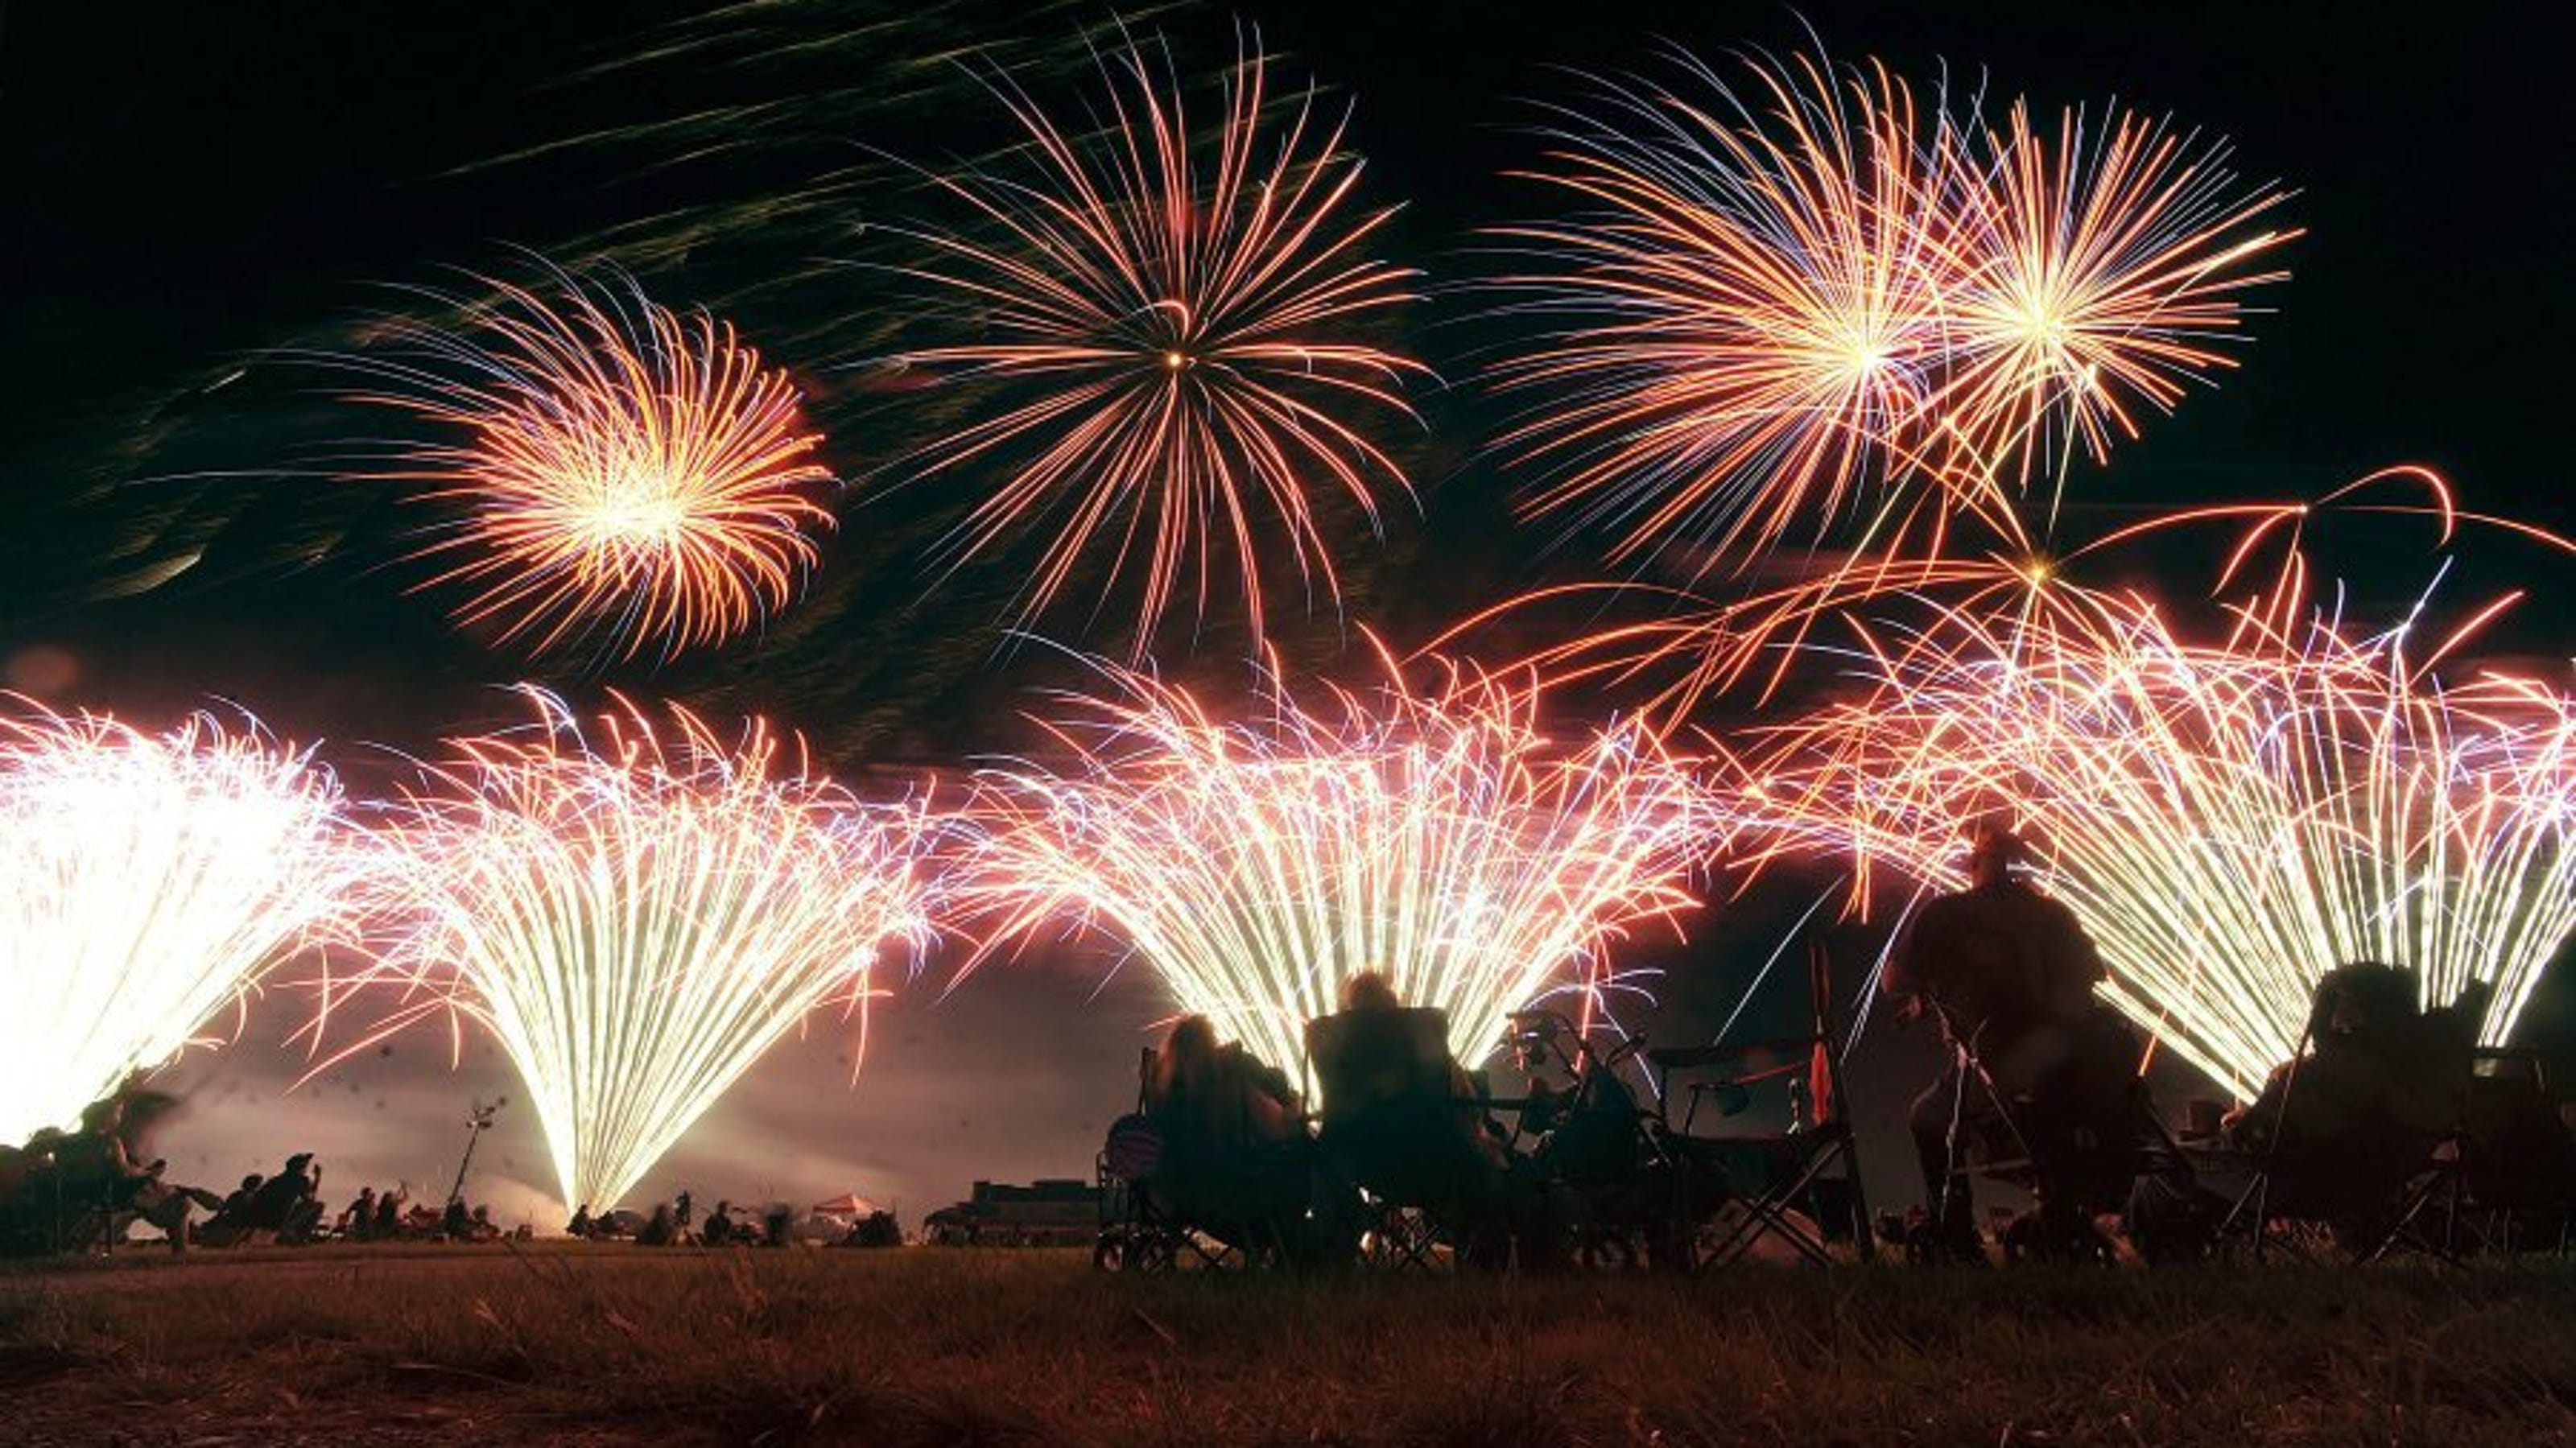 Two days of festivities set for Abilene s Fourth of July celebration